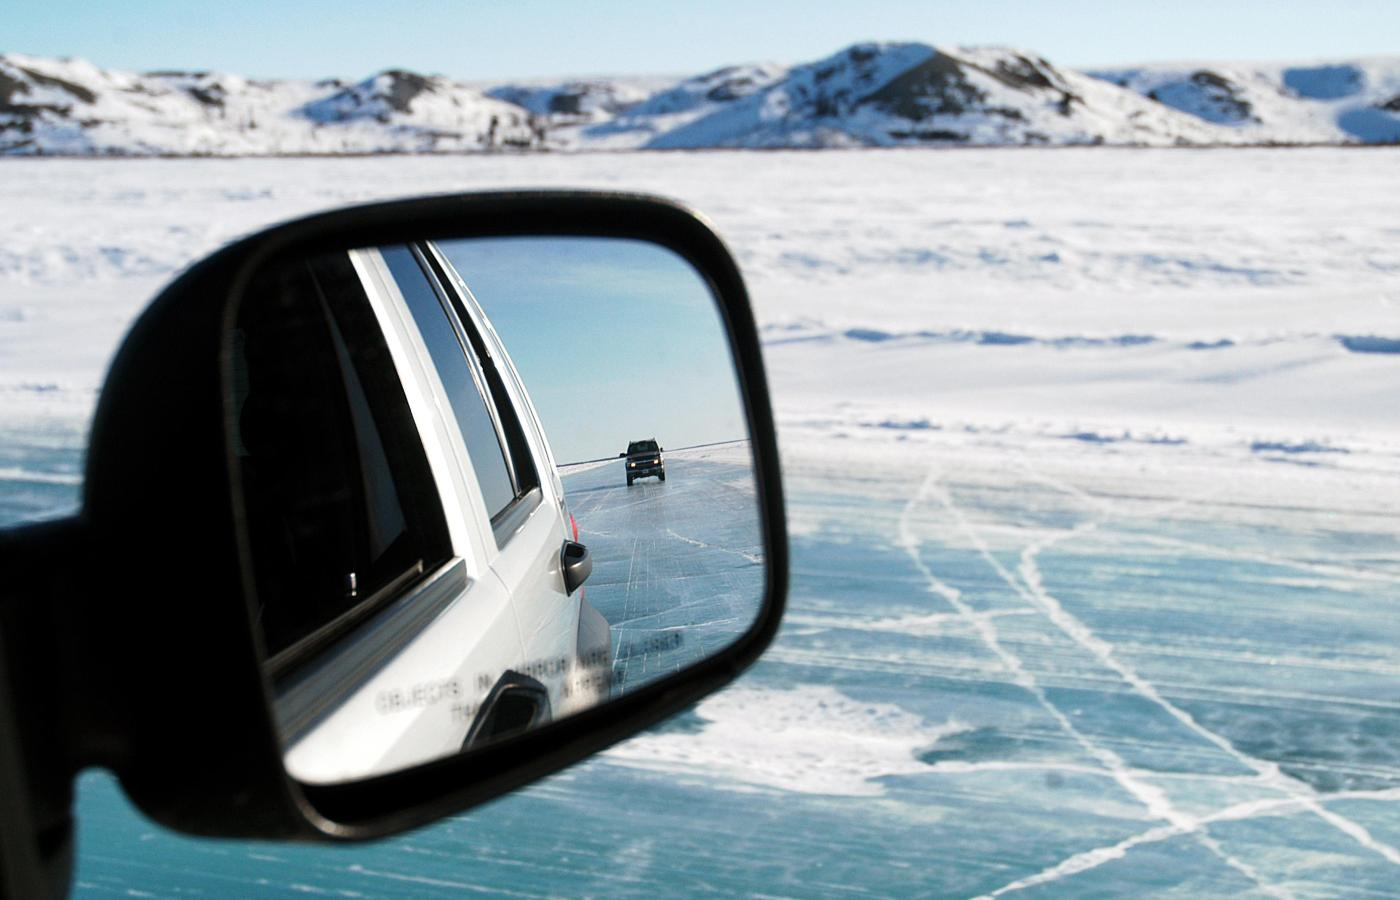 The Inuvik to Aklavik ice road in the NWT.